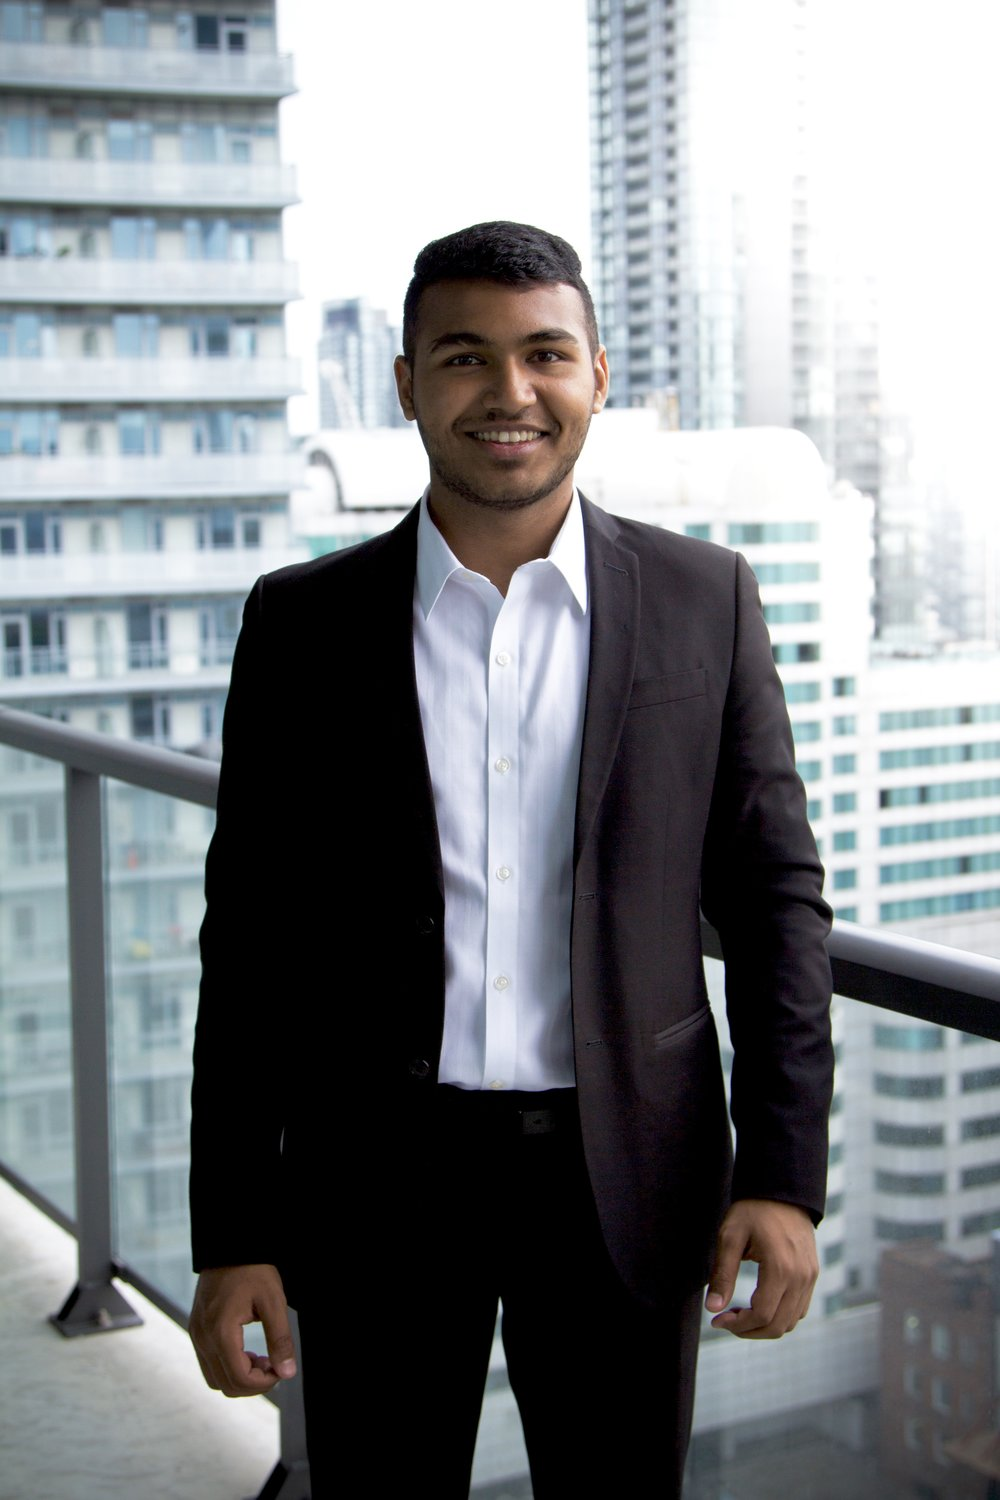 Samarth Arabastani - Electrical Engineering student with proven ability to manage multiple local and international projects while meeting challenging deadlines. Strong public speaking and problem-solving skills for diverse professional and general audiences as evidenced by consistent excellence in global competitions. Extensive involvement in all levels of customer service, relationship management, data analytics, and product development in sales and management roles. Unique skillset often used to comprehend large data sets to identify market gaps and communicate solutions effectively.READ HIS STORY HERE >